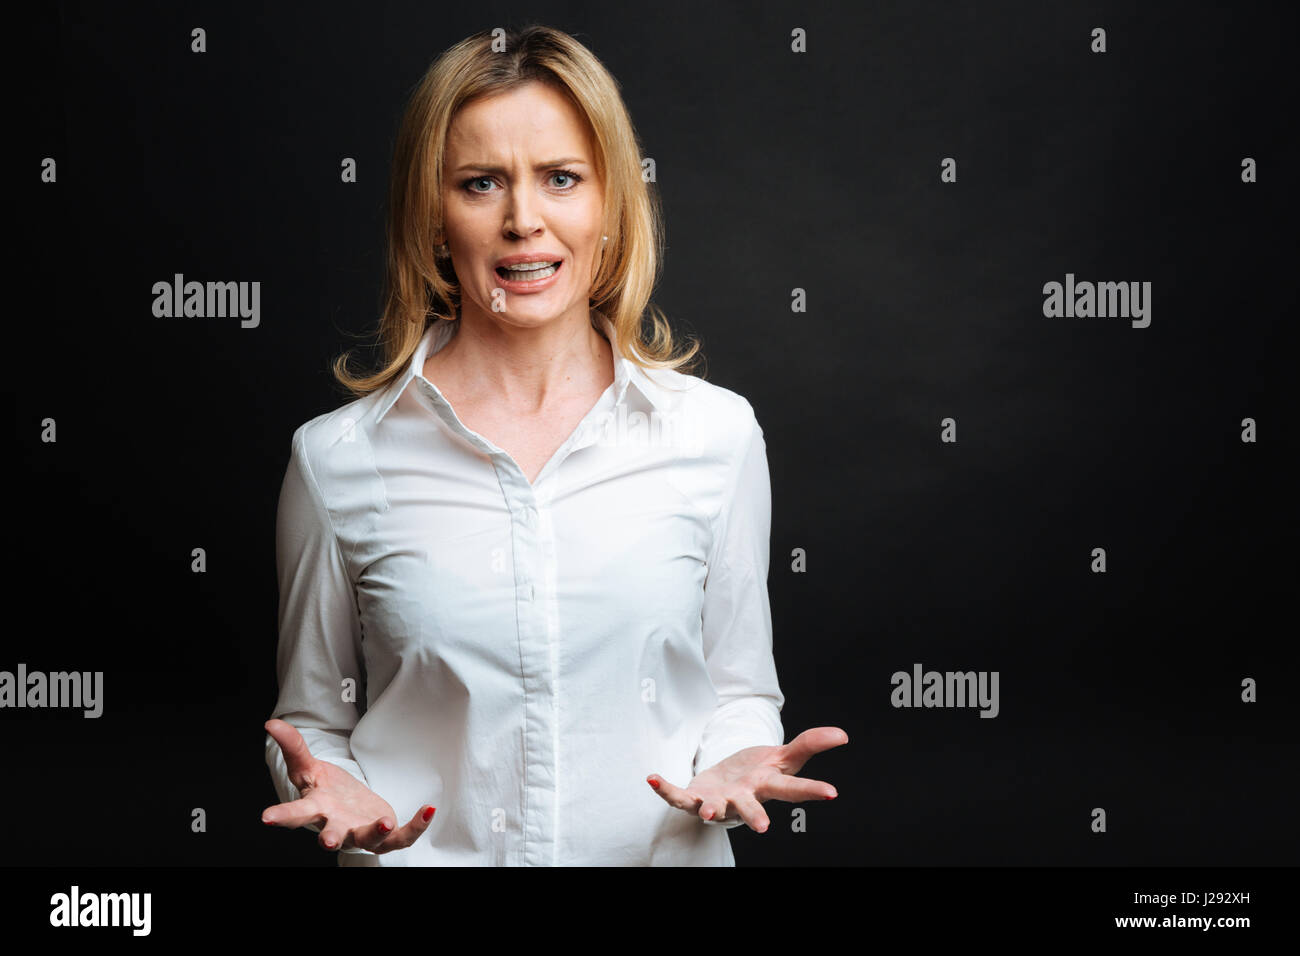 Discontented woman expressing dissatisfaction in the black colored studio - Stock Image